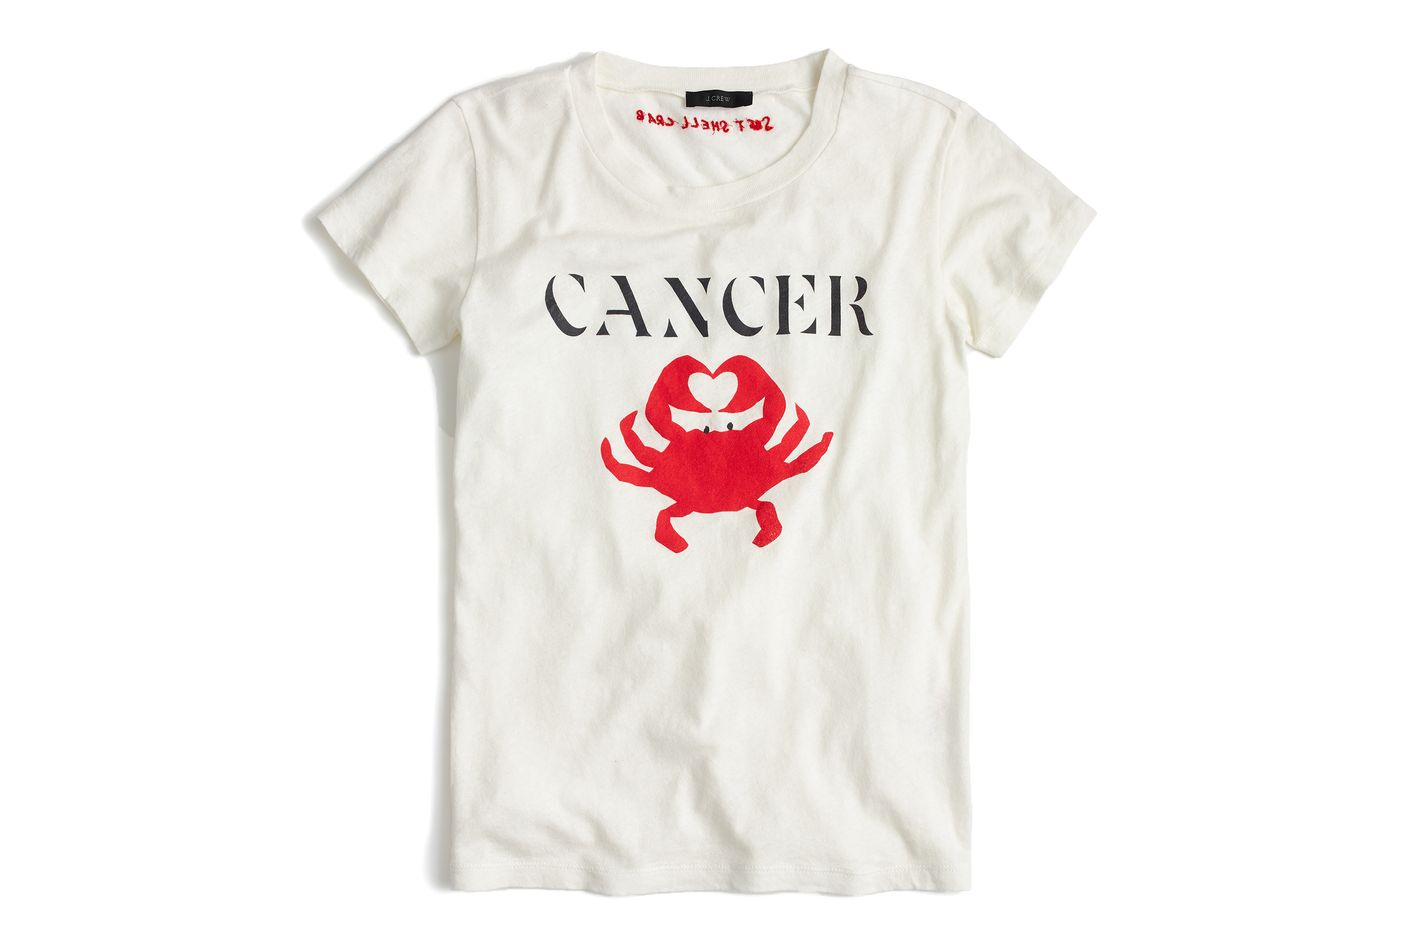 J.Crew Horoscope T-Shirt in Cancer